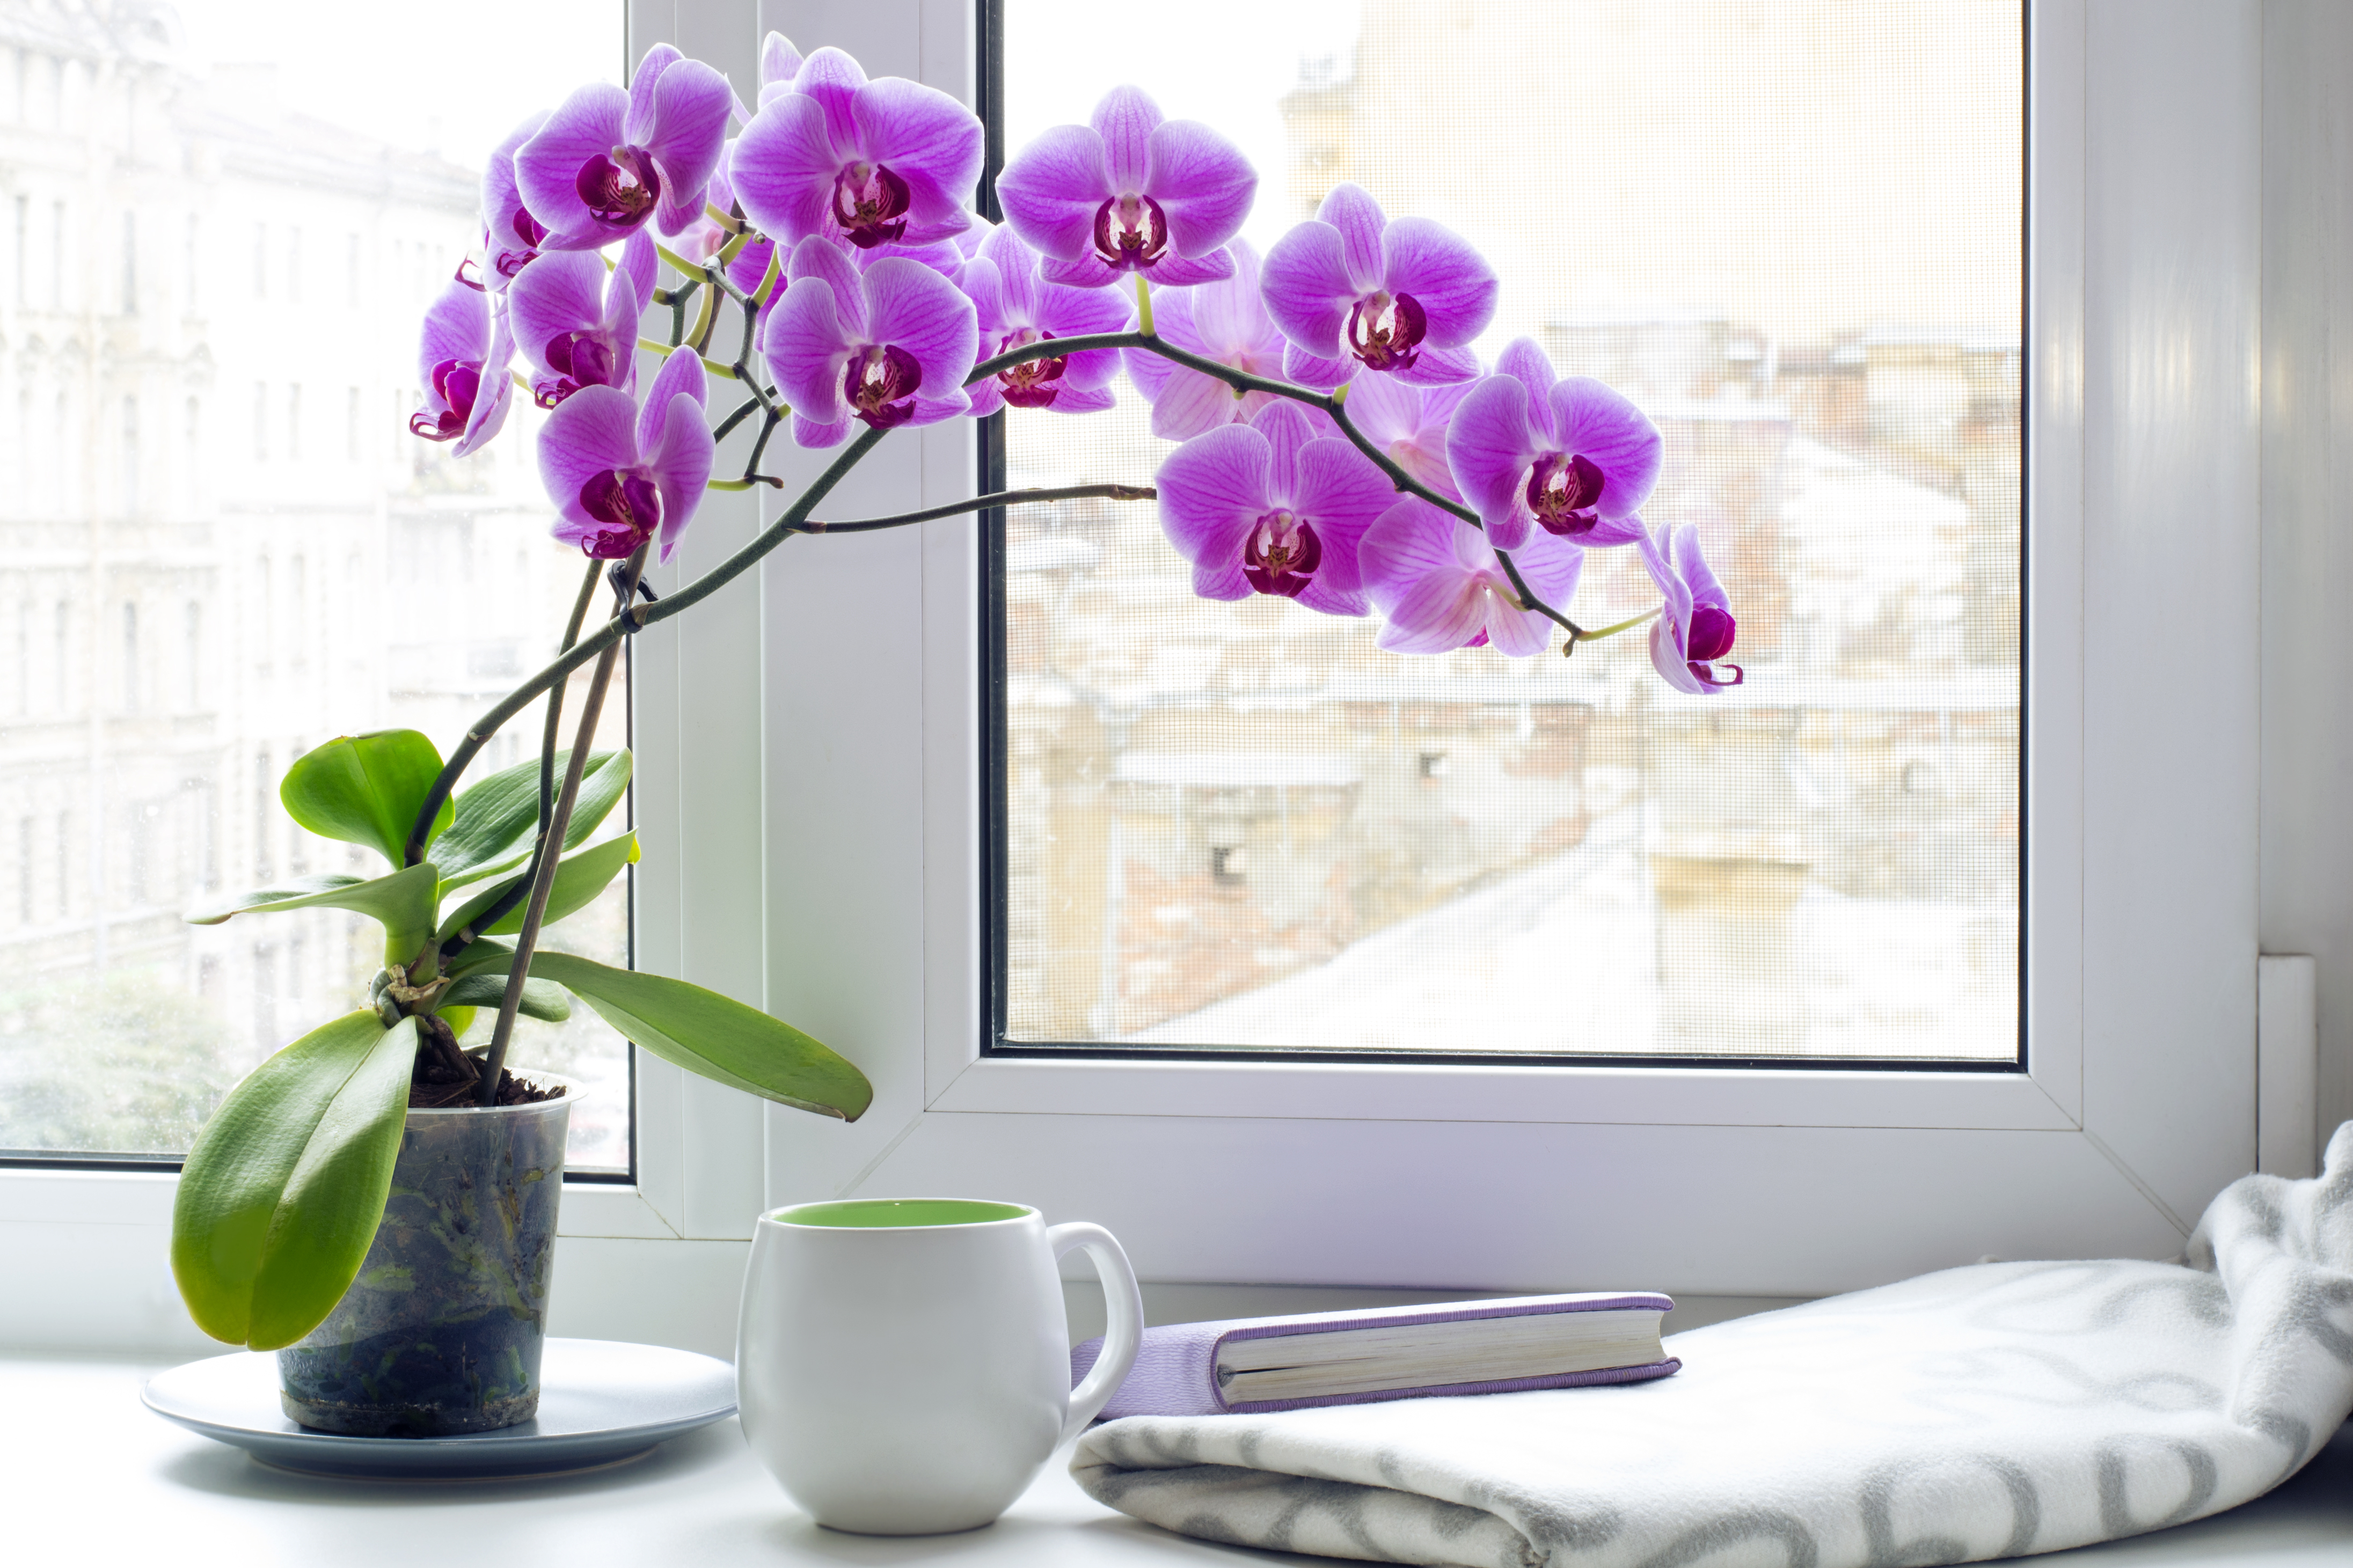 Orchids How To Grow And Care For Orchids The Old Farmer S Almanac